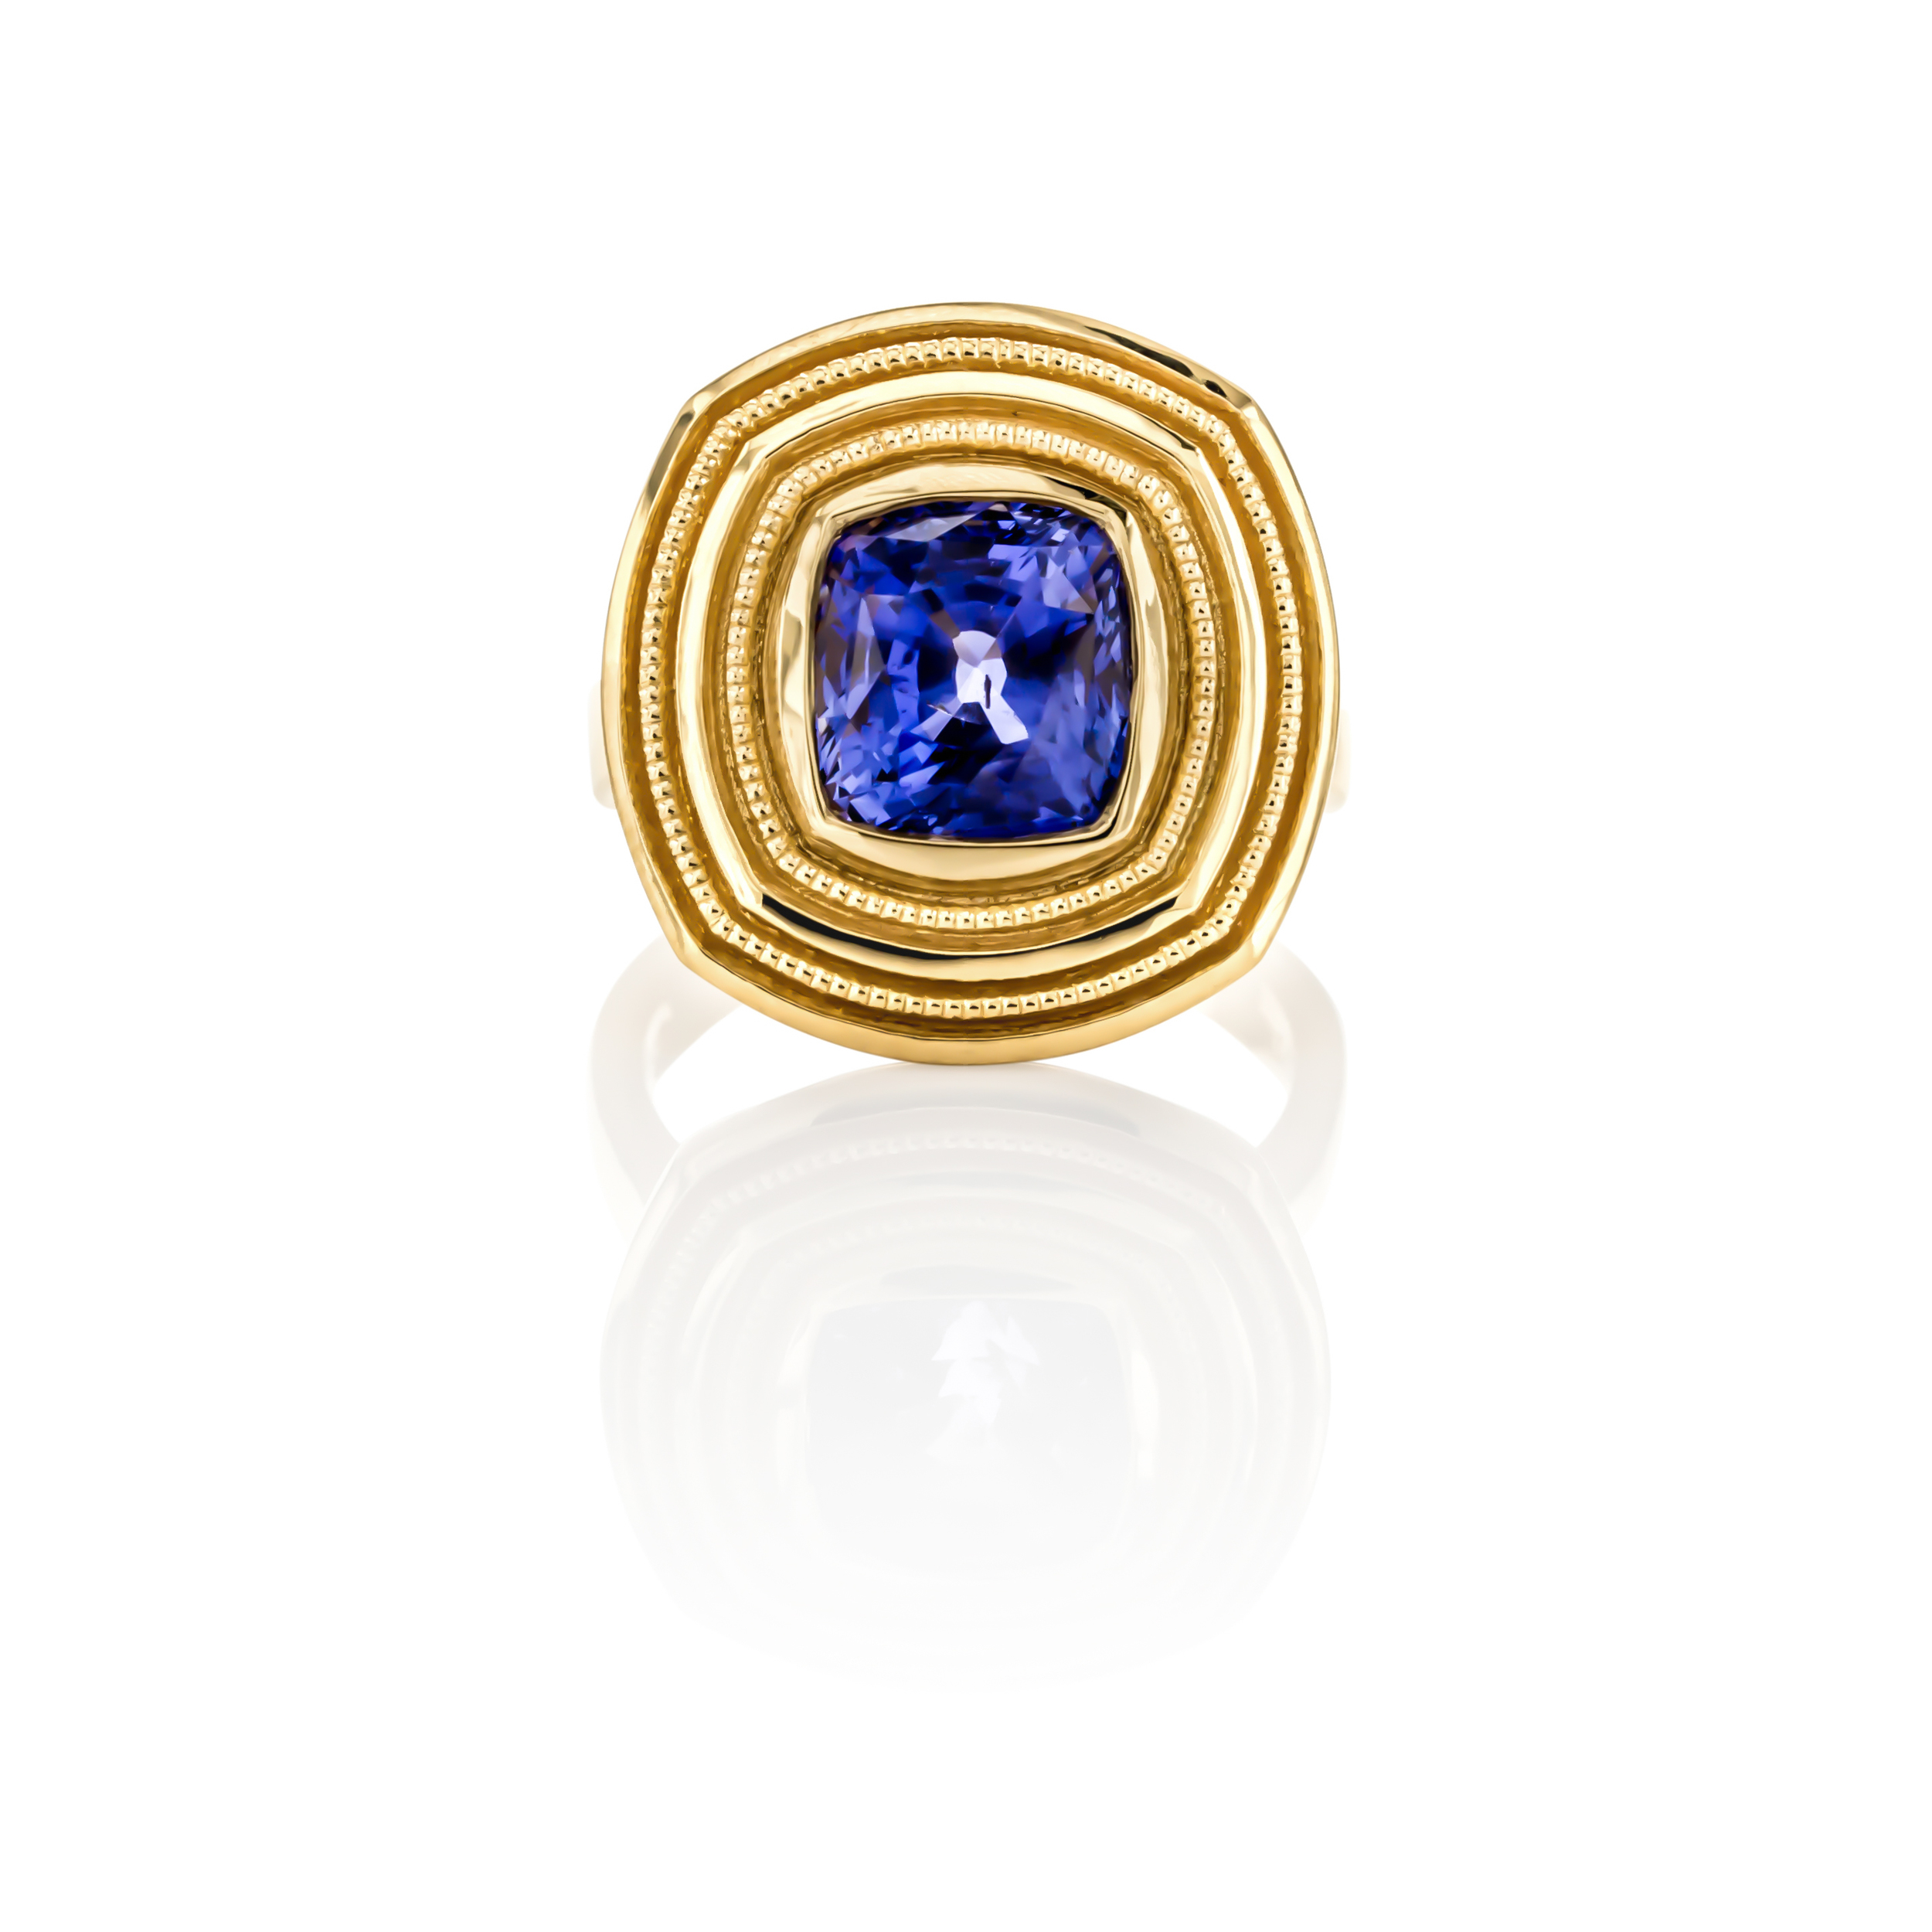 CUSTOM SAPPHIRE RING SET IN 22K YELLOW GOLD